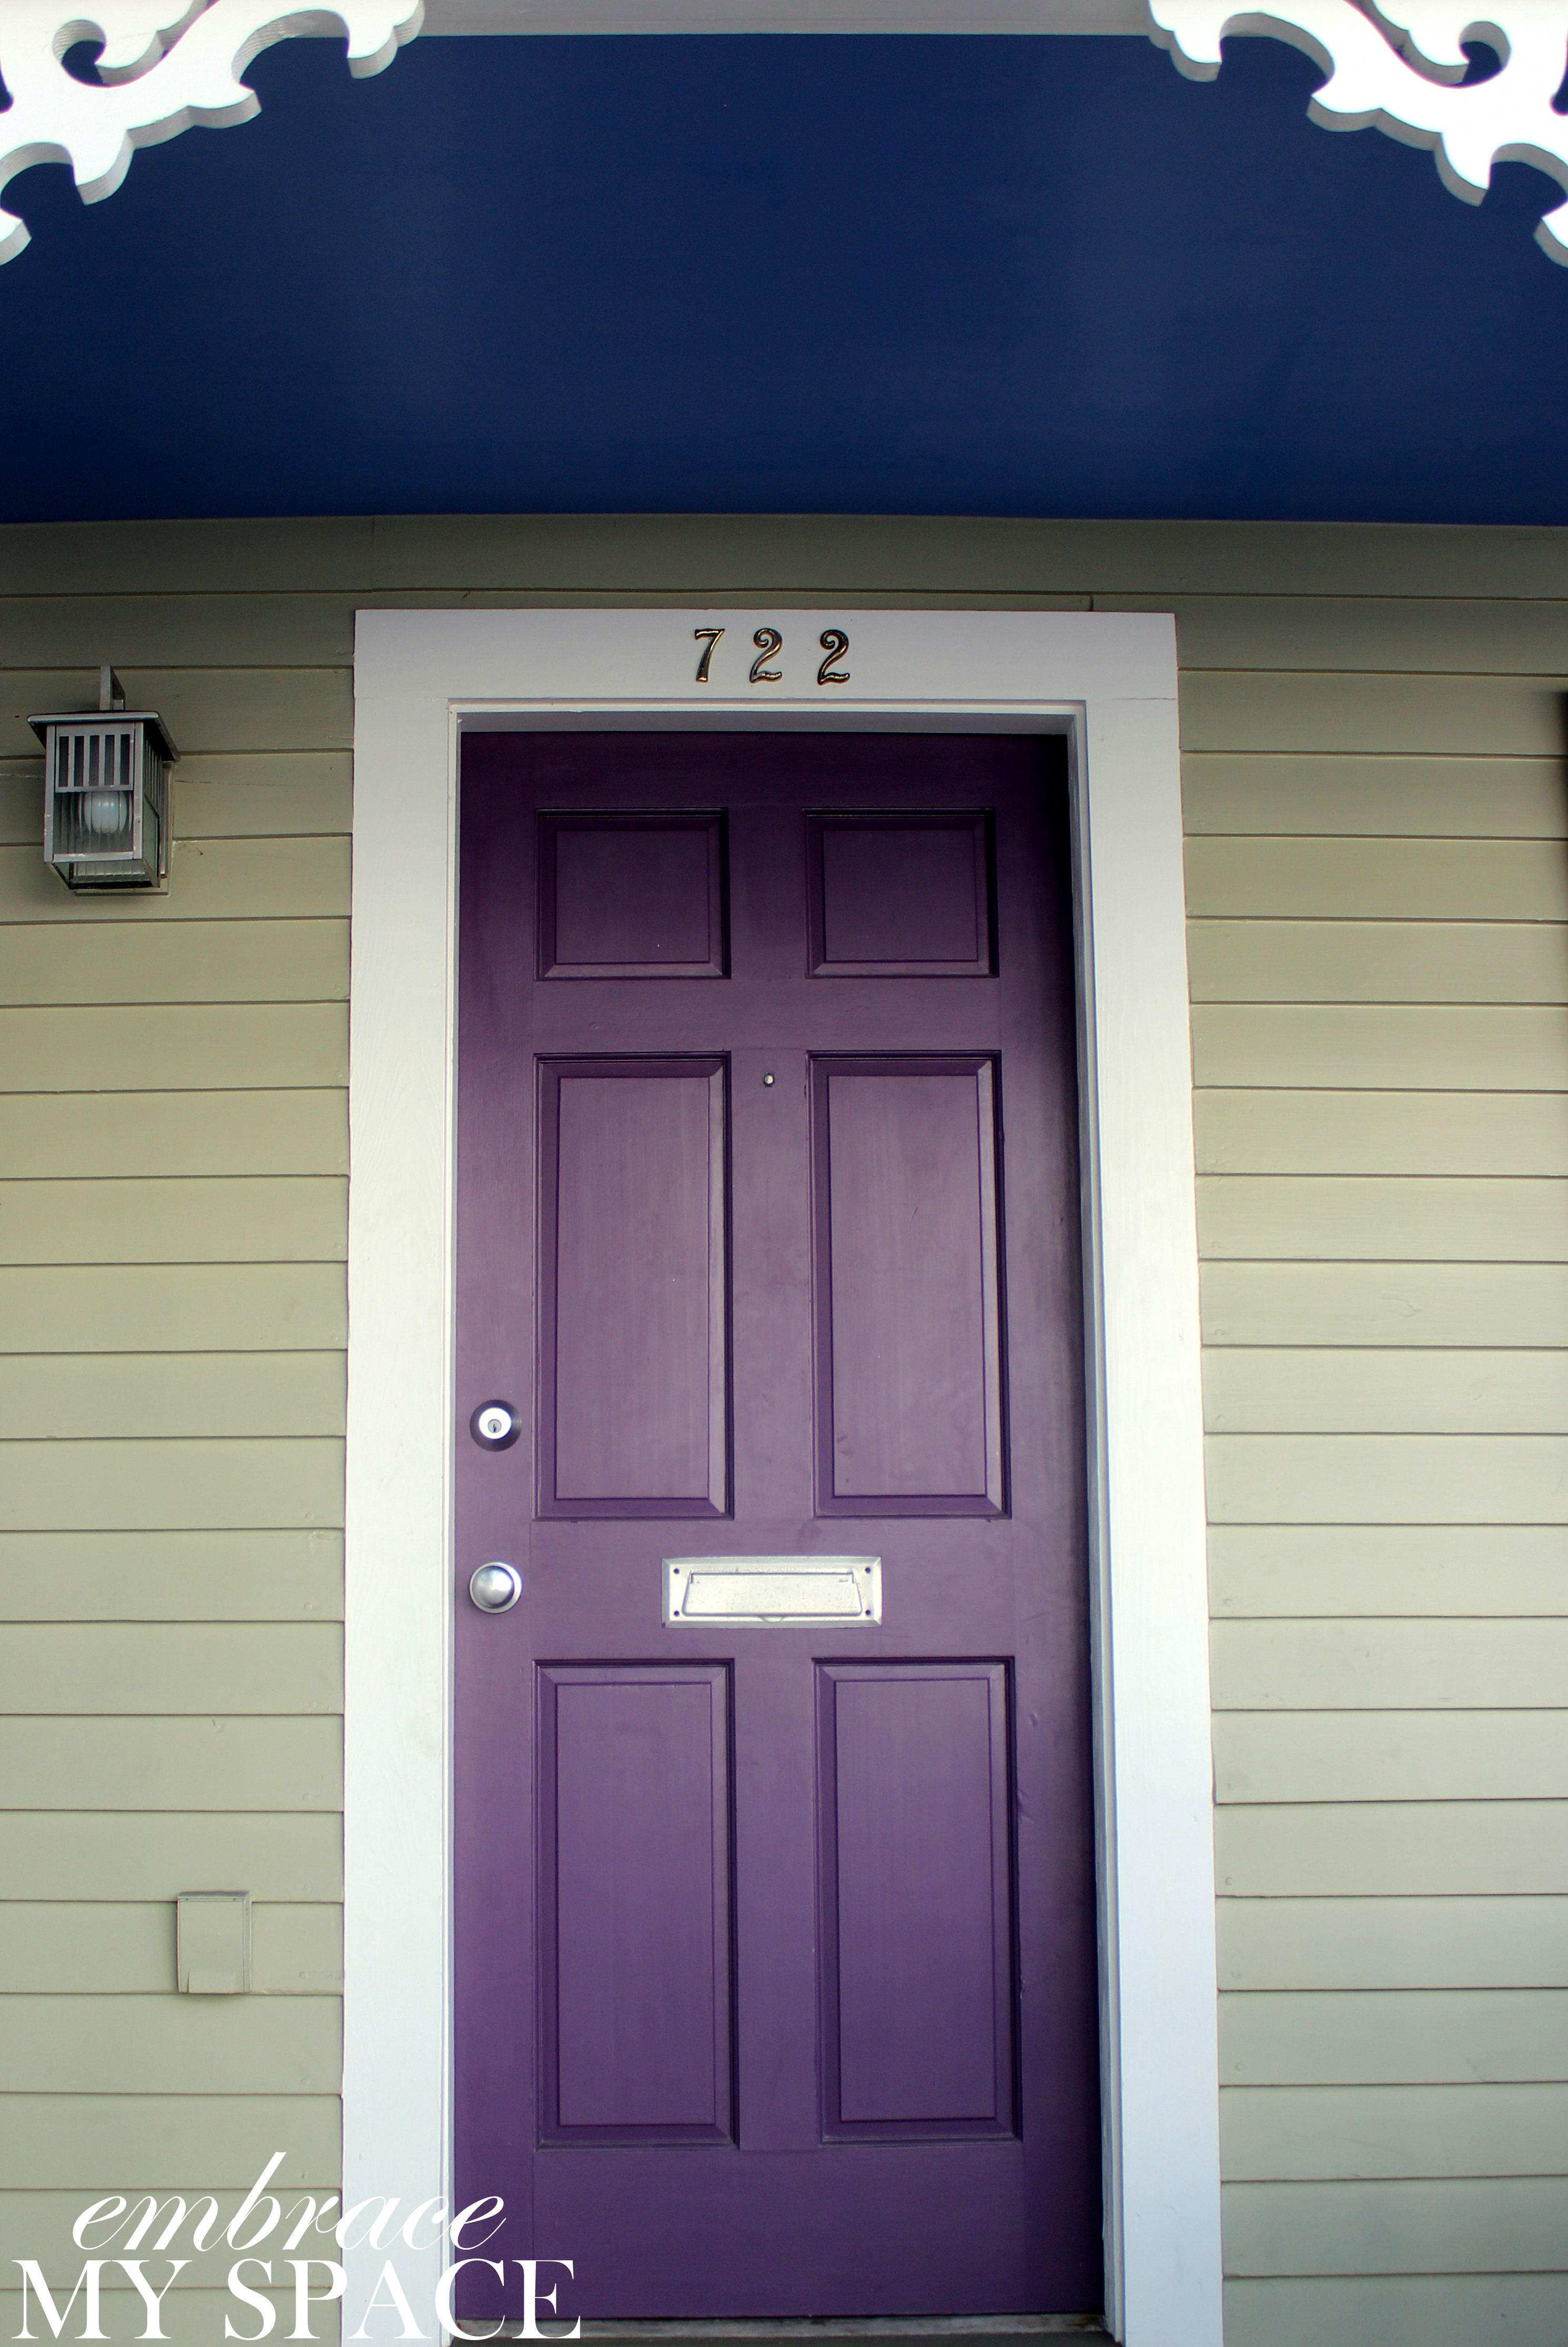 4461 #1F2640 Embrace My Space: Key West Front Doors picture/photo Different Color Front Doors 47092981